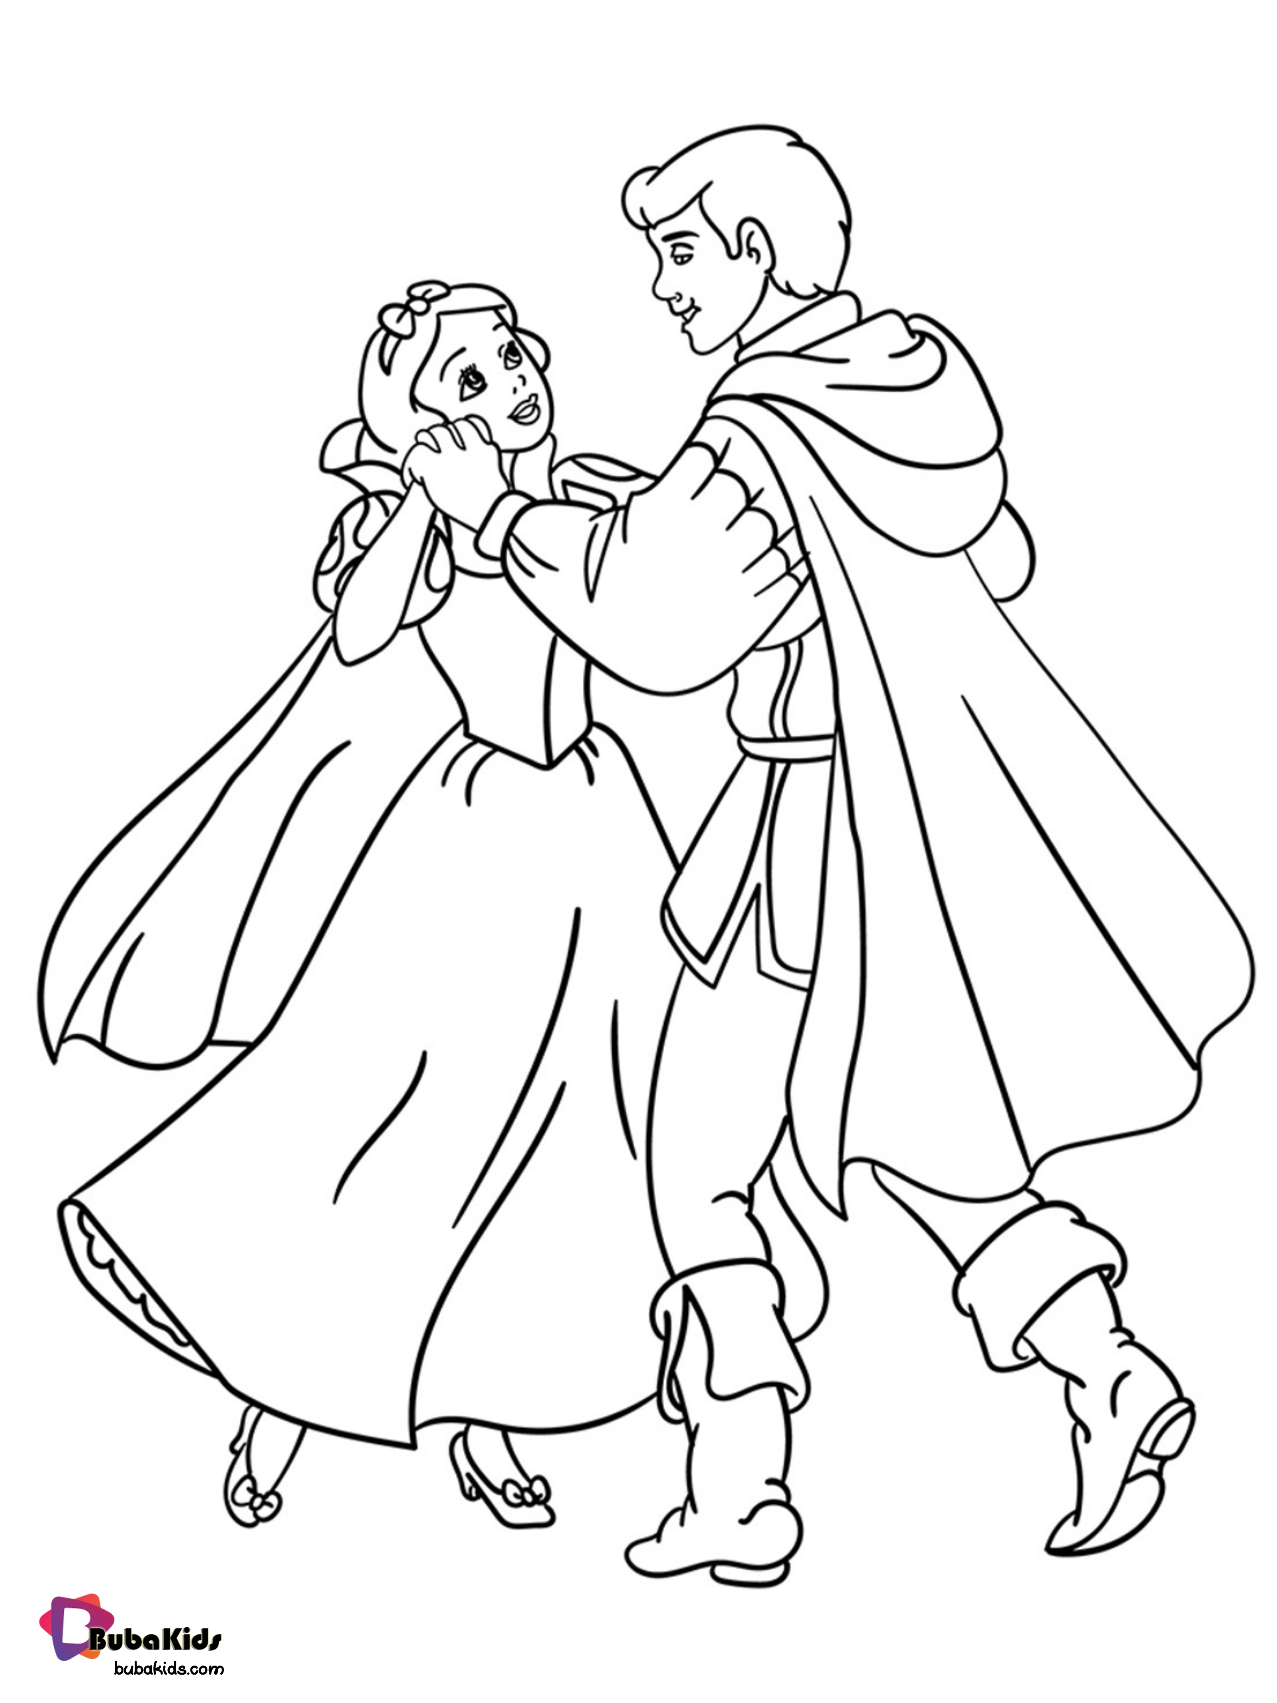 Free Download And Printable Snow White And Prince Charming Coloring Page Collection Of Ca Snow White Coloring Pages Princess Coloring Pages Princess Coloring